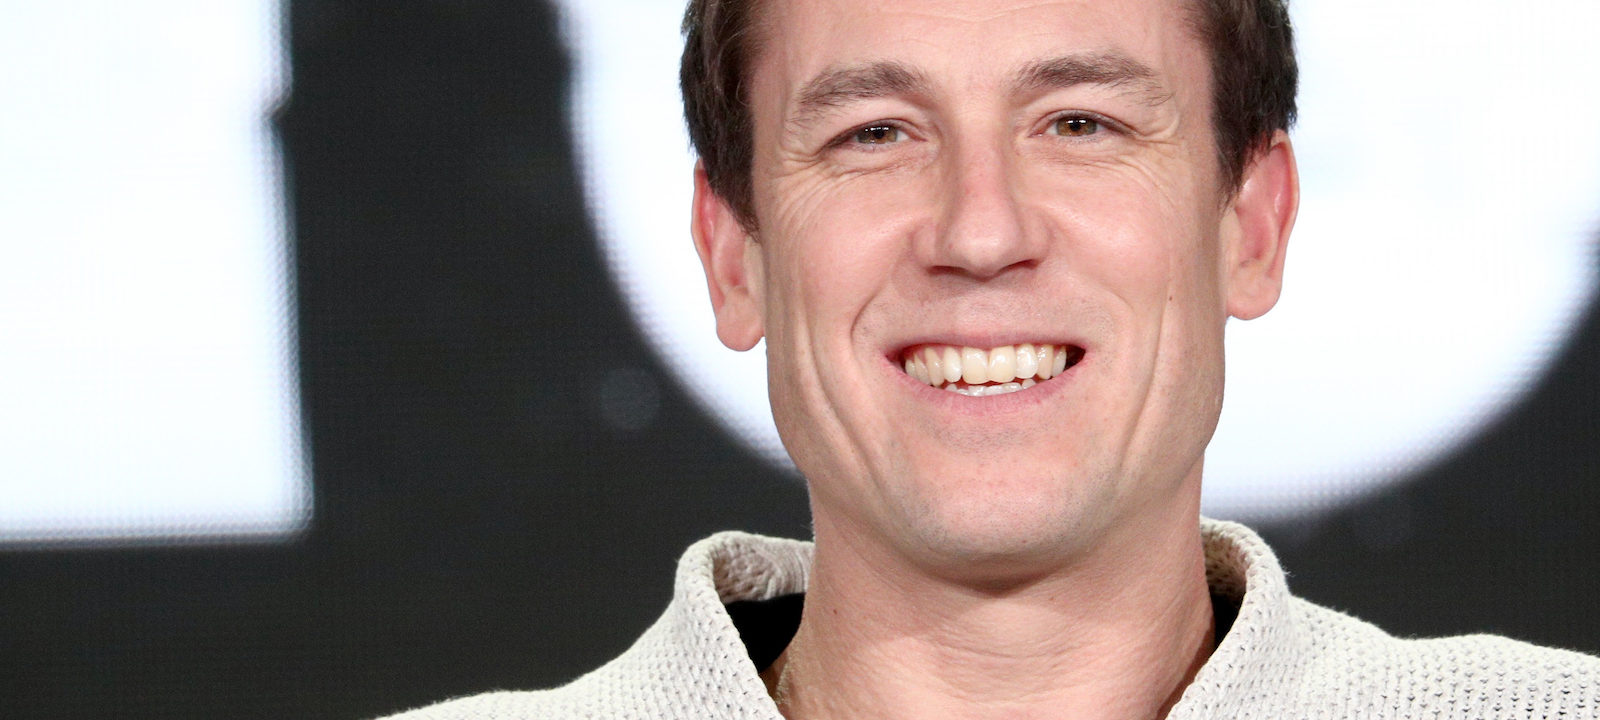 Actor Tobias Menzies of 'The Terror' speaks onstage during the AMC Networks portion of the 2018 Winter Television Critics Association Press Tour at The Langham Huntington, Pasadena on January 13, 2018 in Pasadena, California.